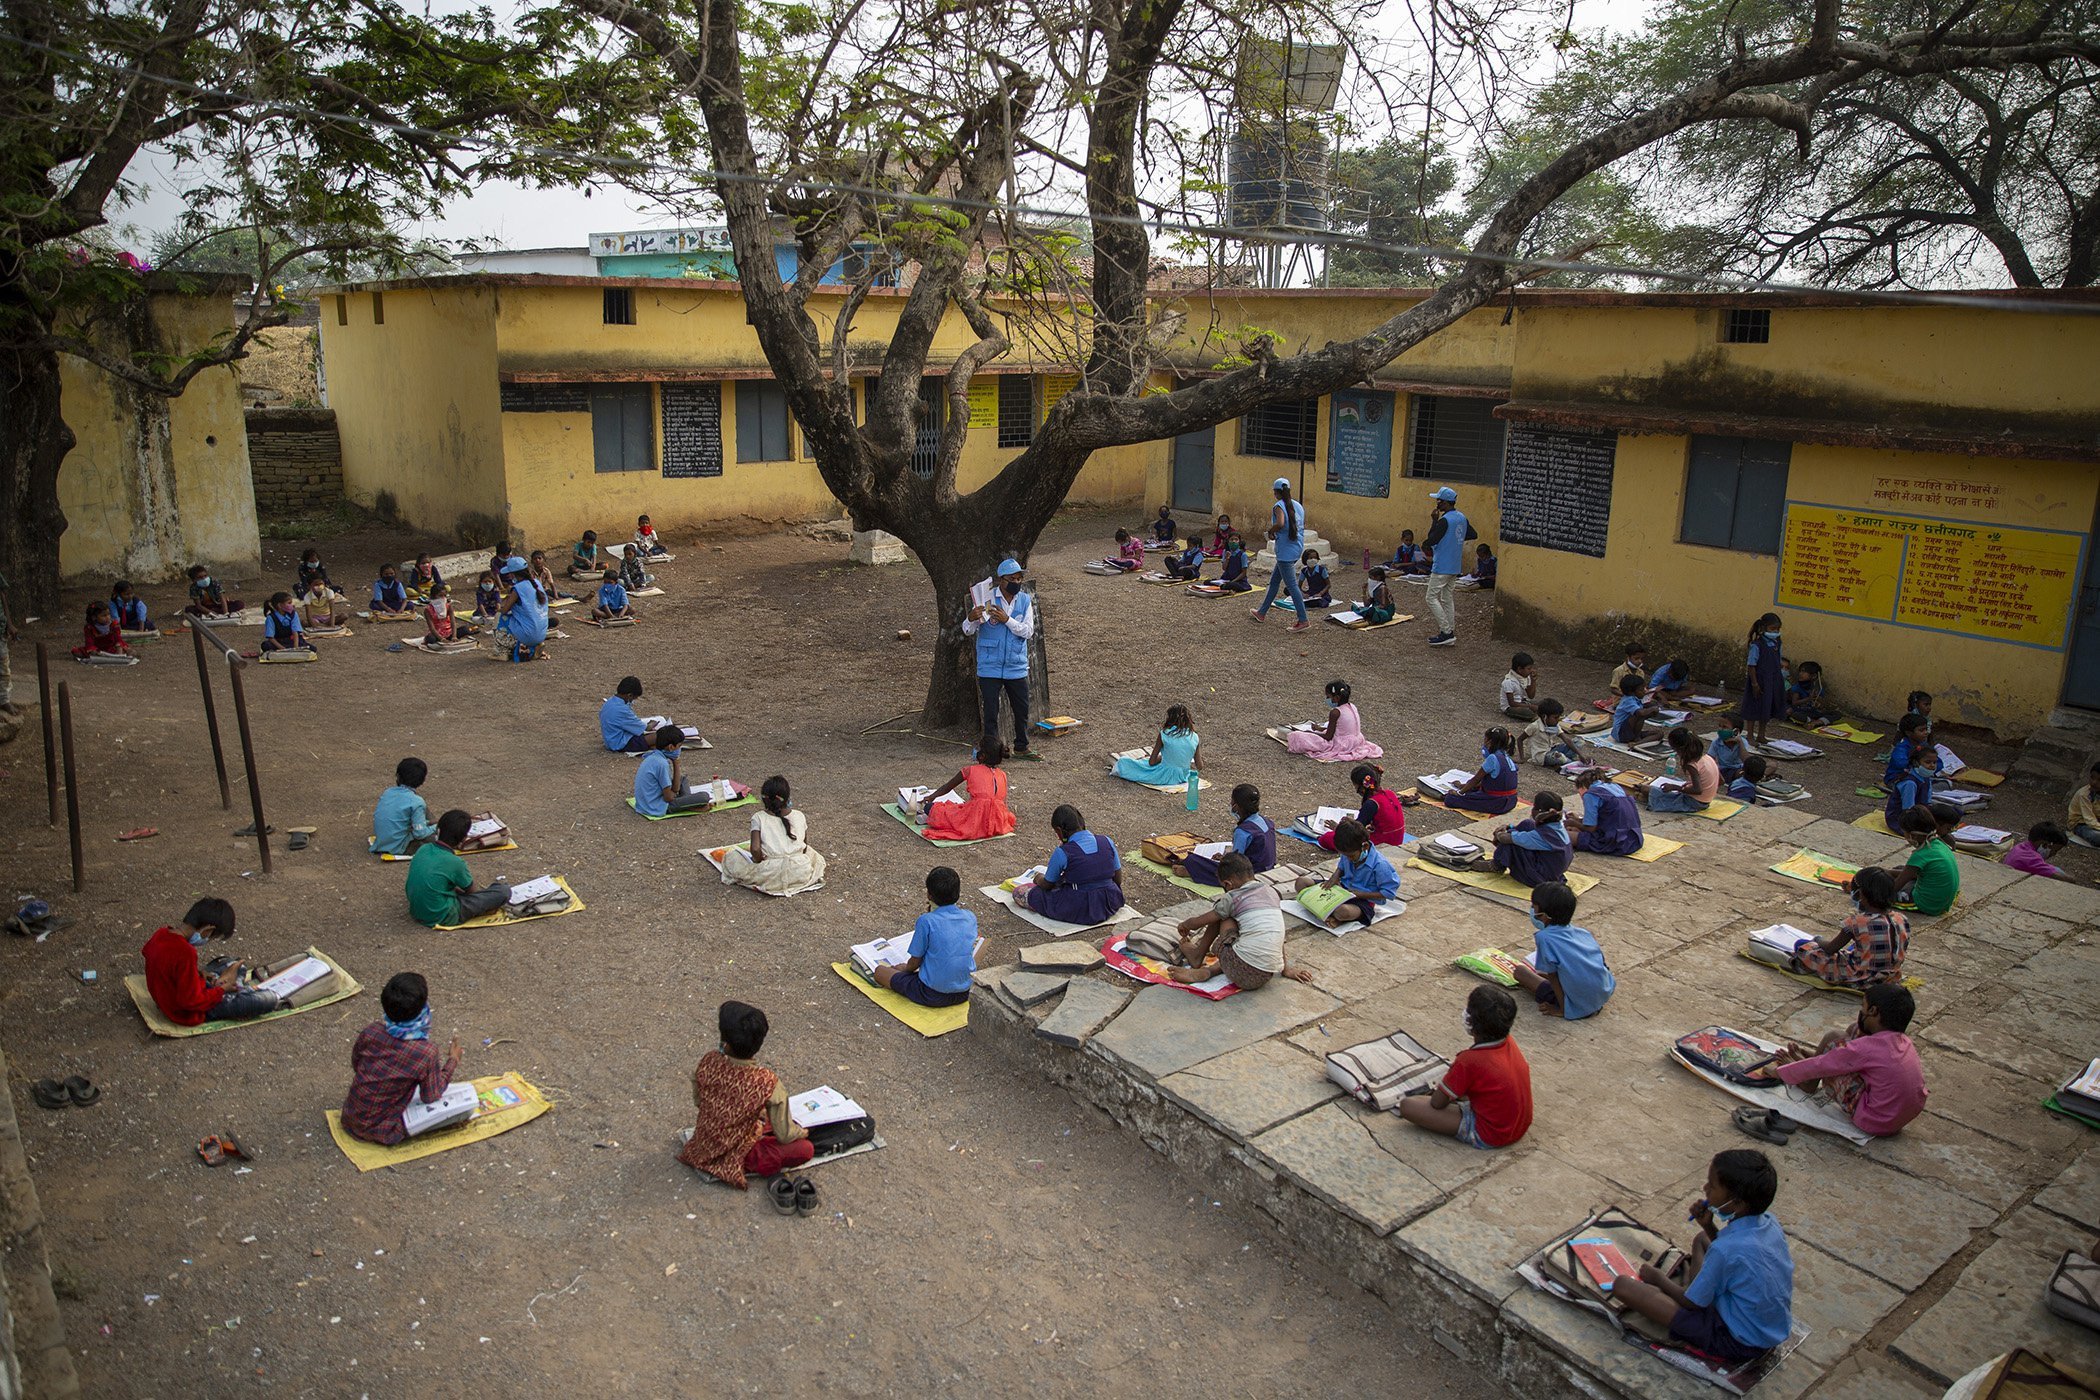 COVID-19-State-Of-Education-School-Facilities-Social-Distance.jpg